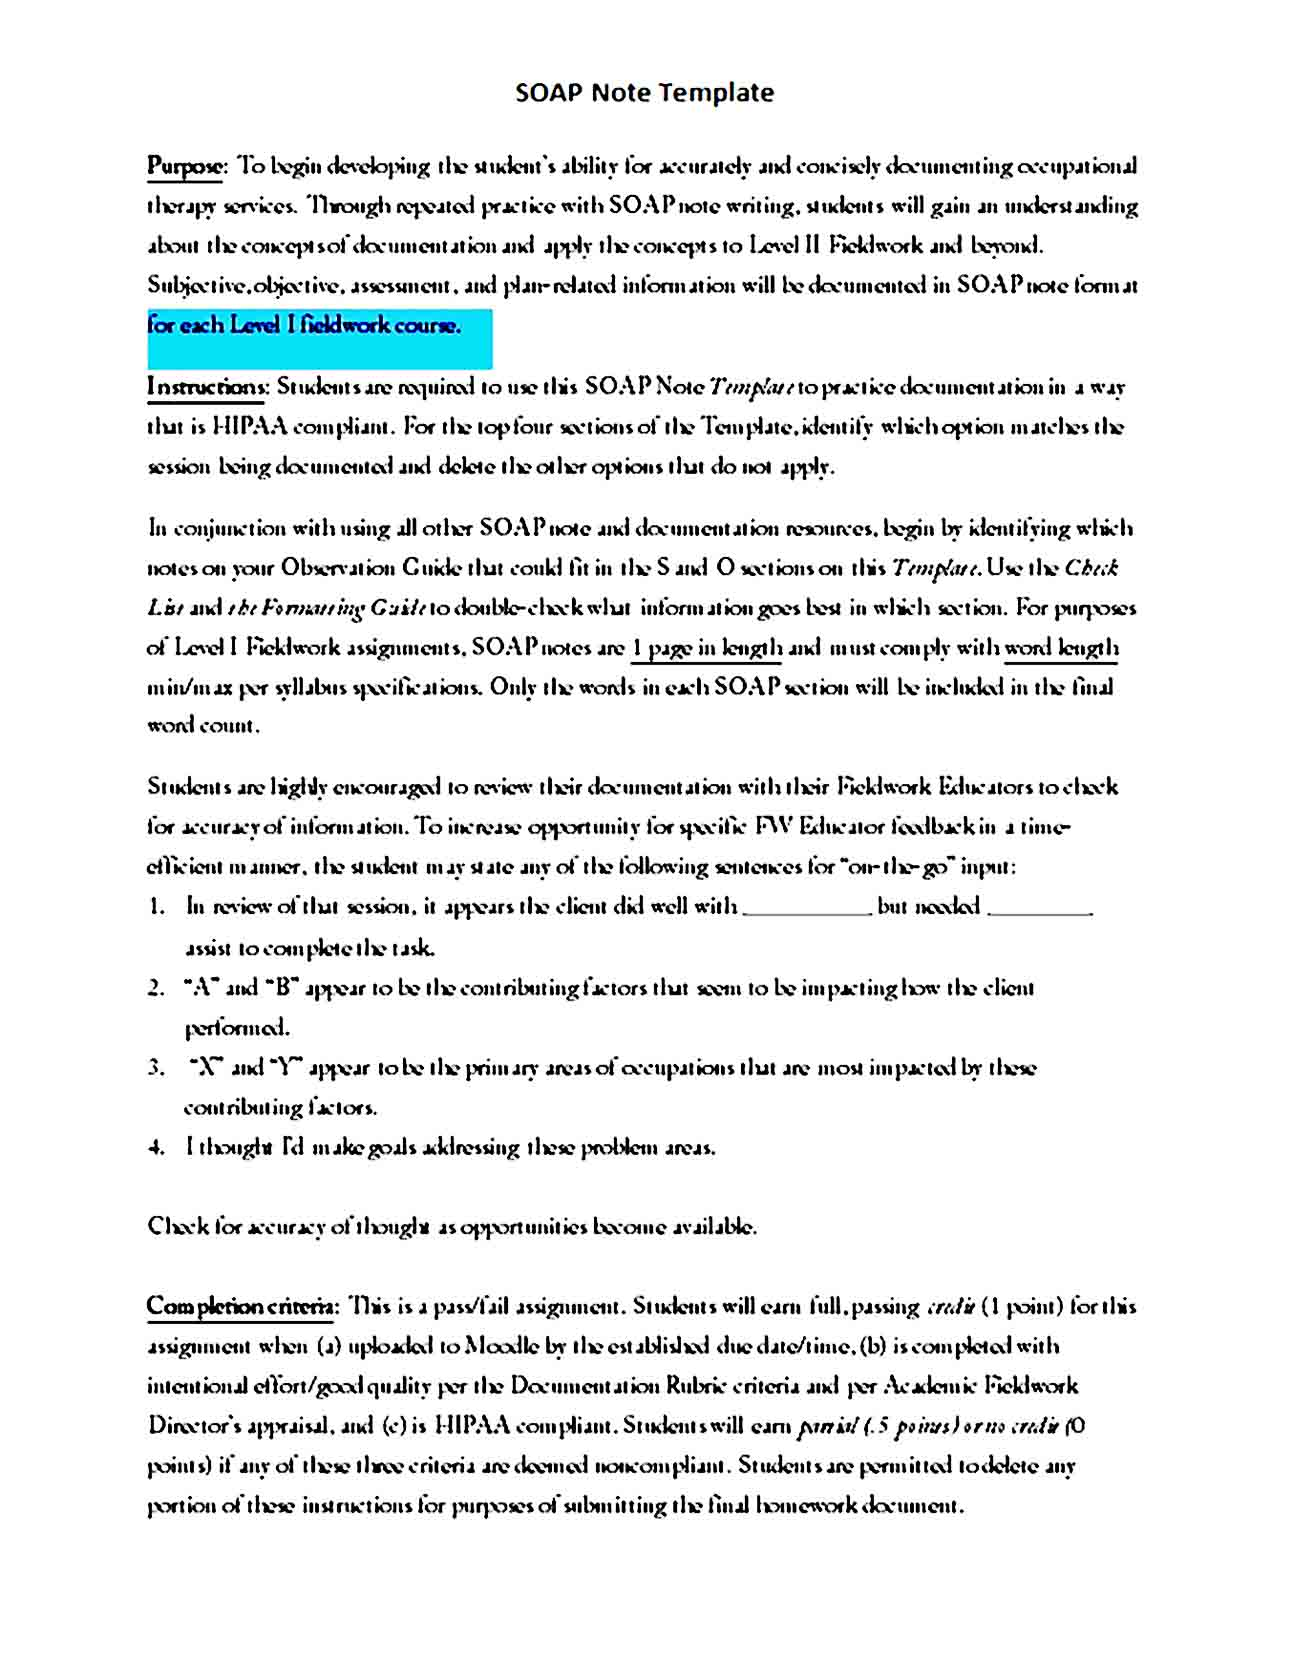 Soap Note Template 13